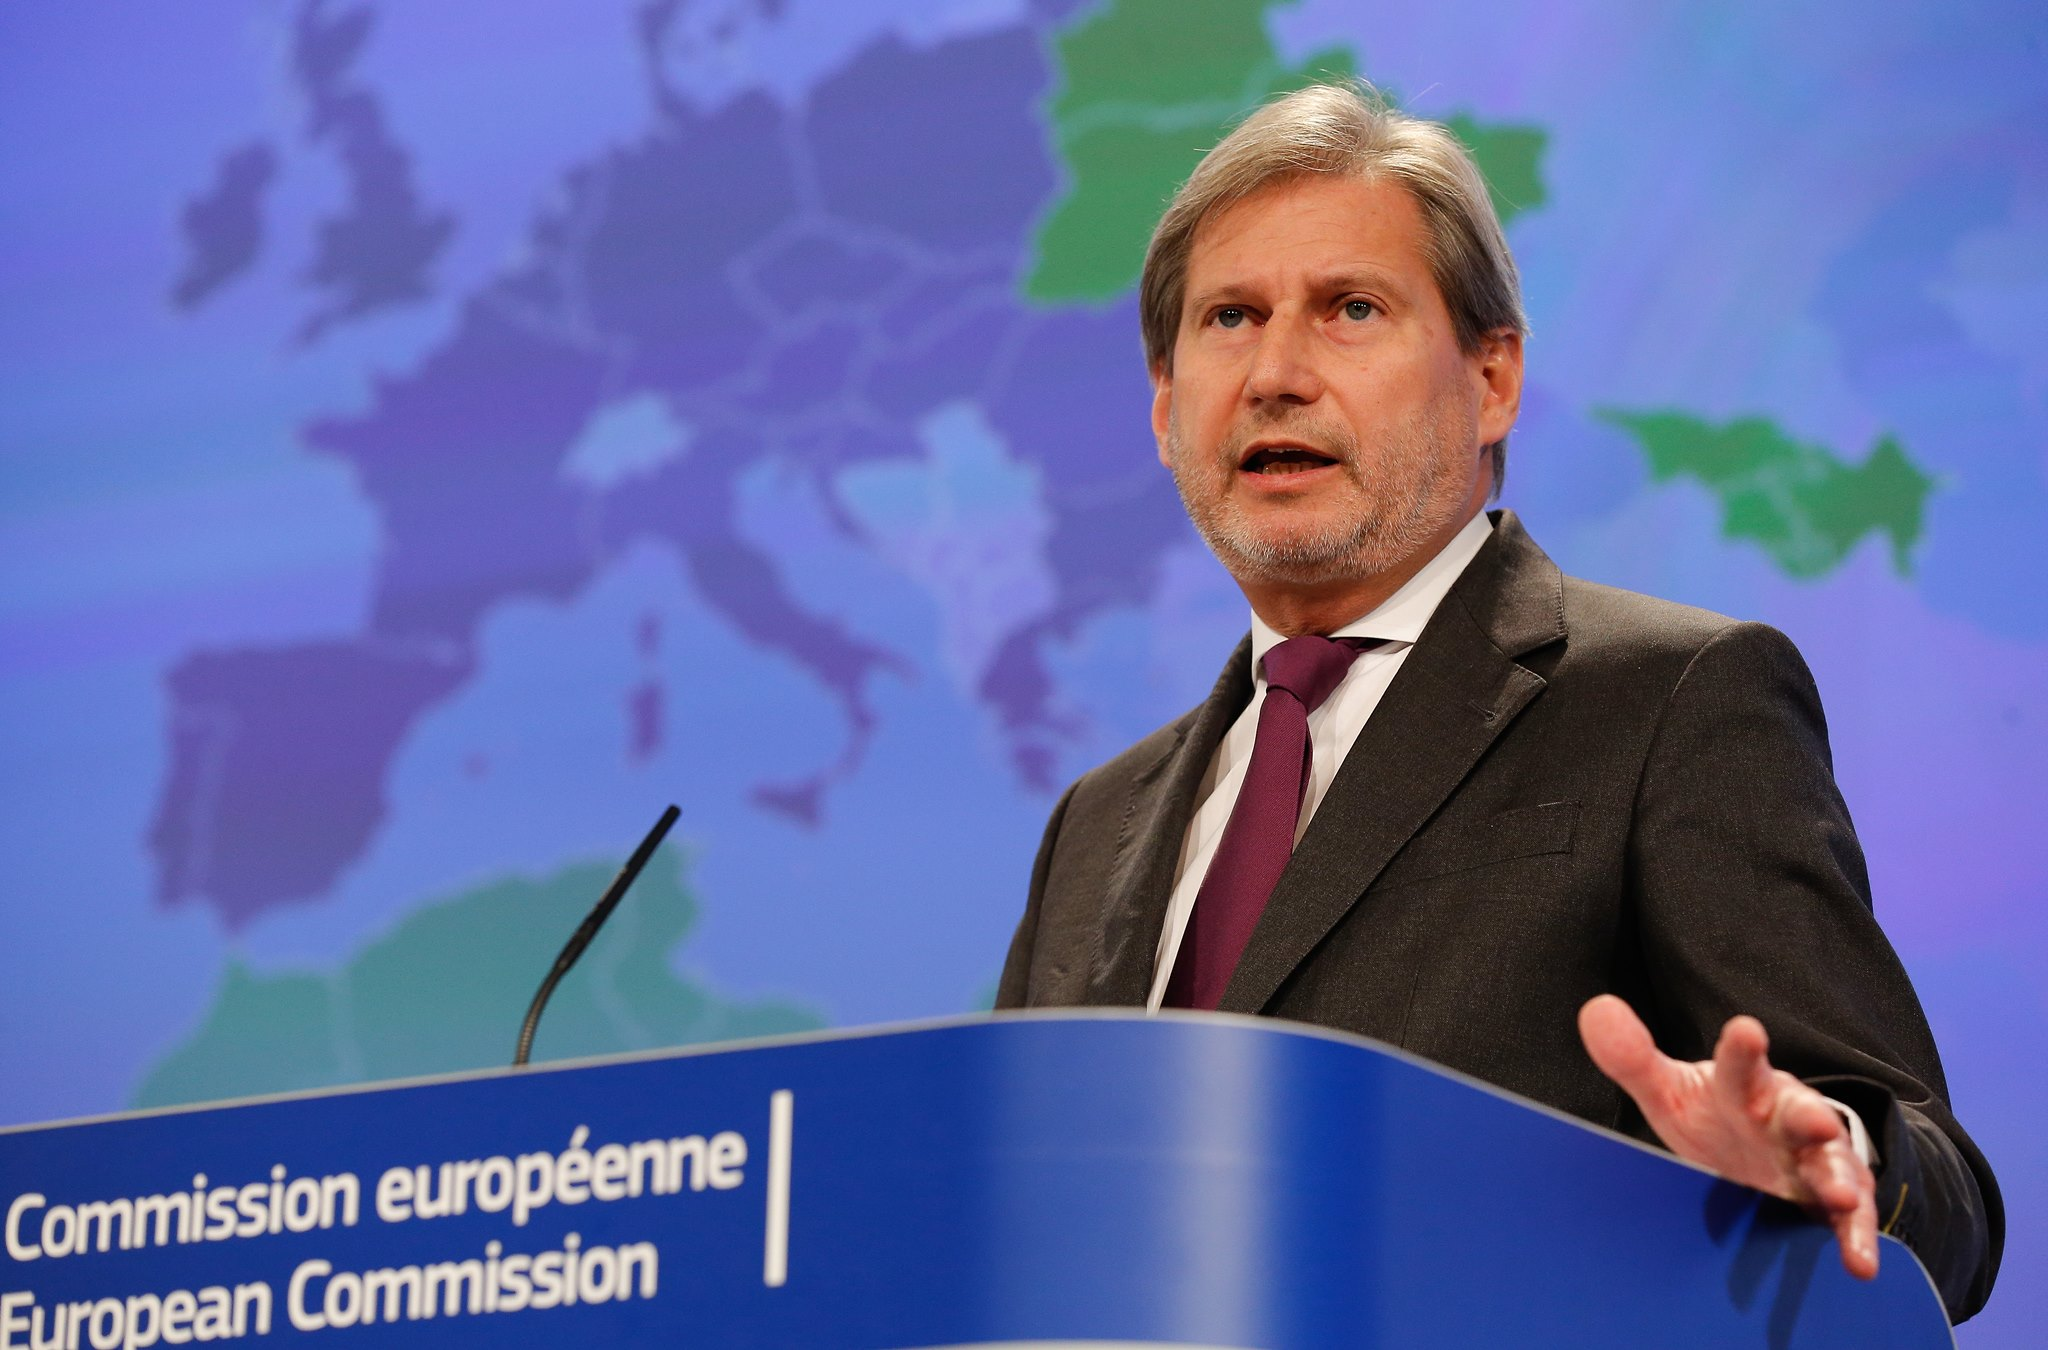 EU expects reforms not snap elections